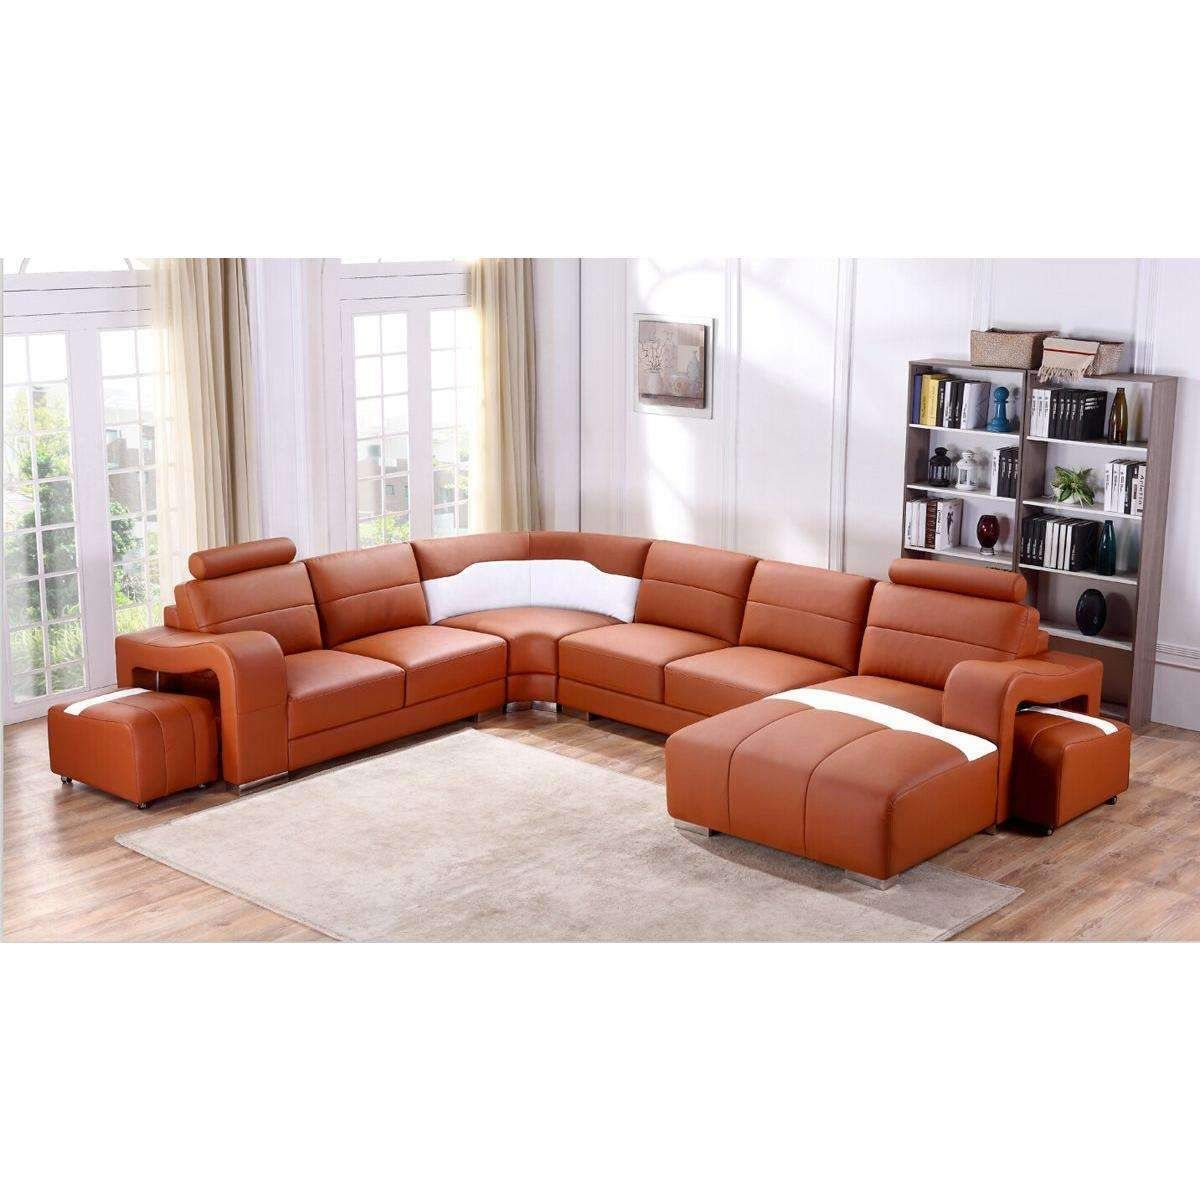 Orange Leather Sectional Sofa Coffee Tables Ideas